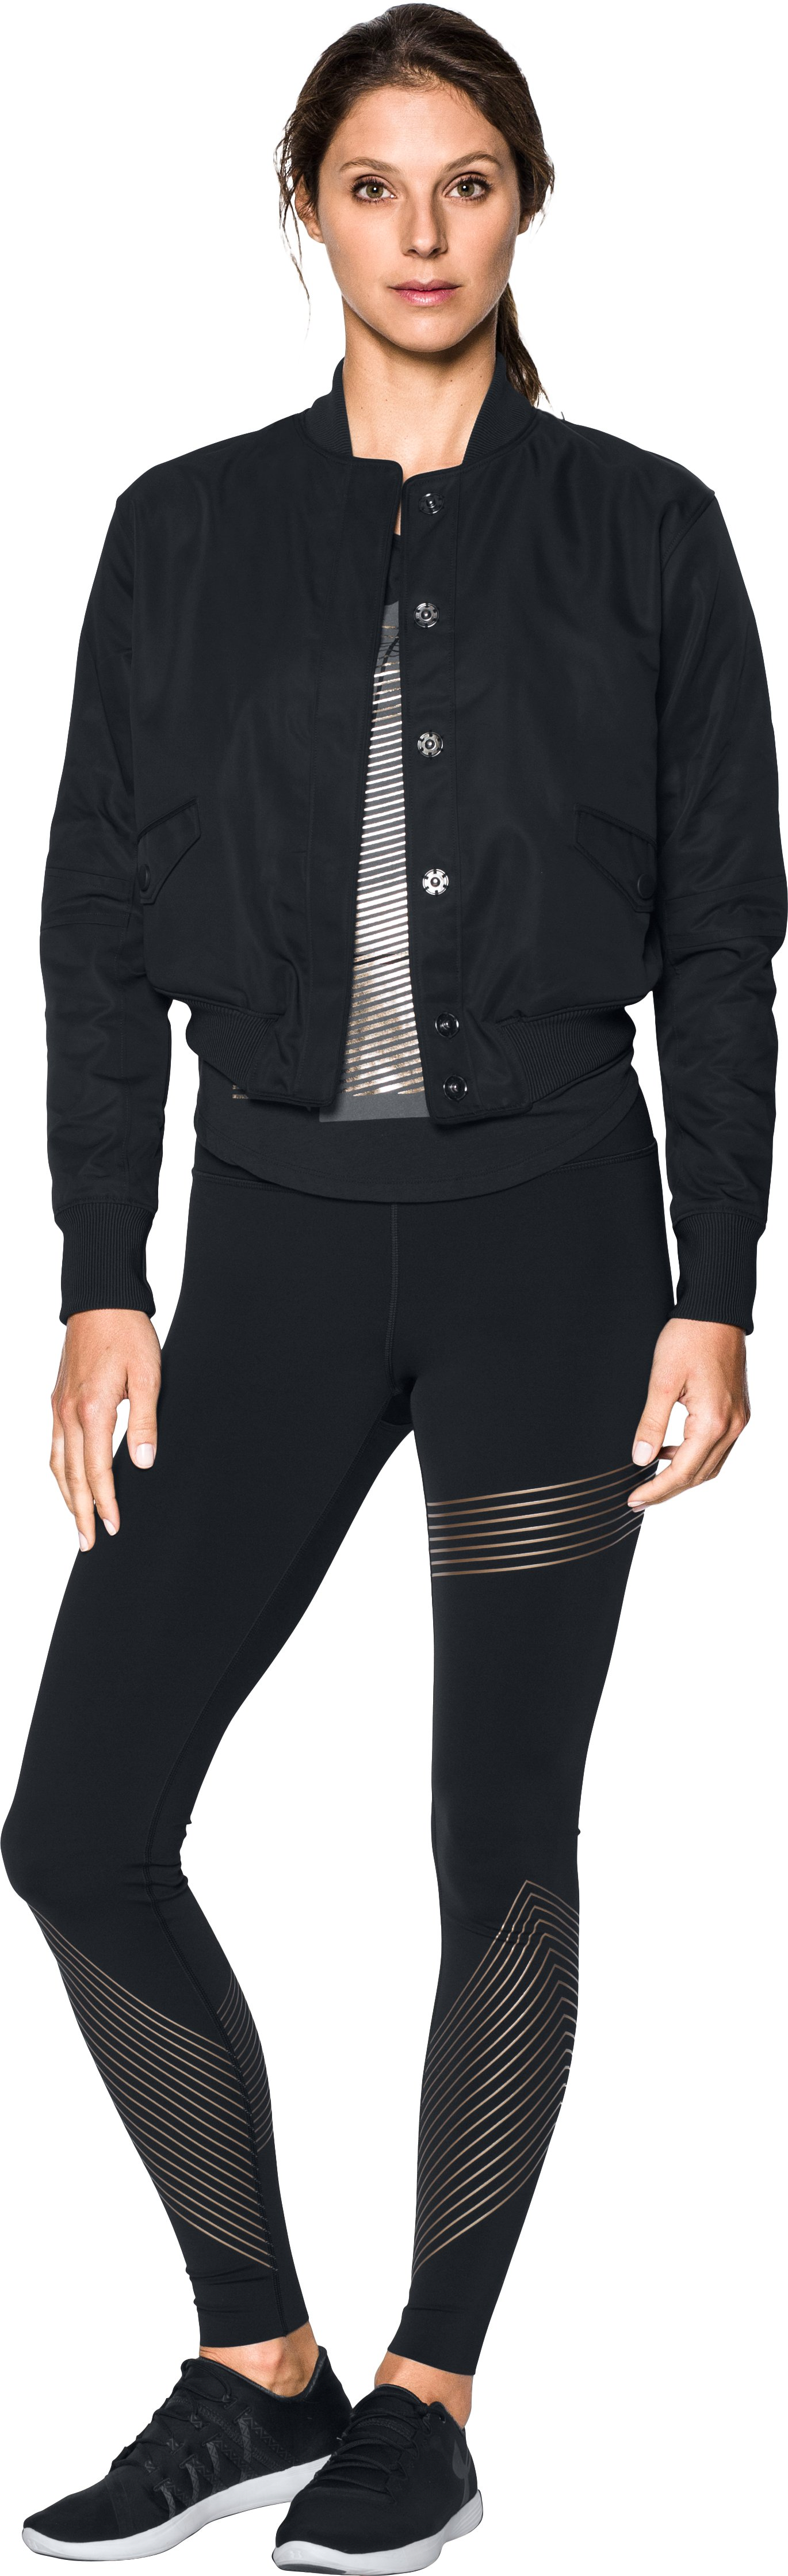 Women's UA Opening Night Bomber Jacket, Black